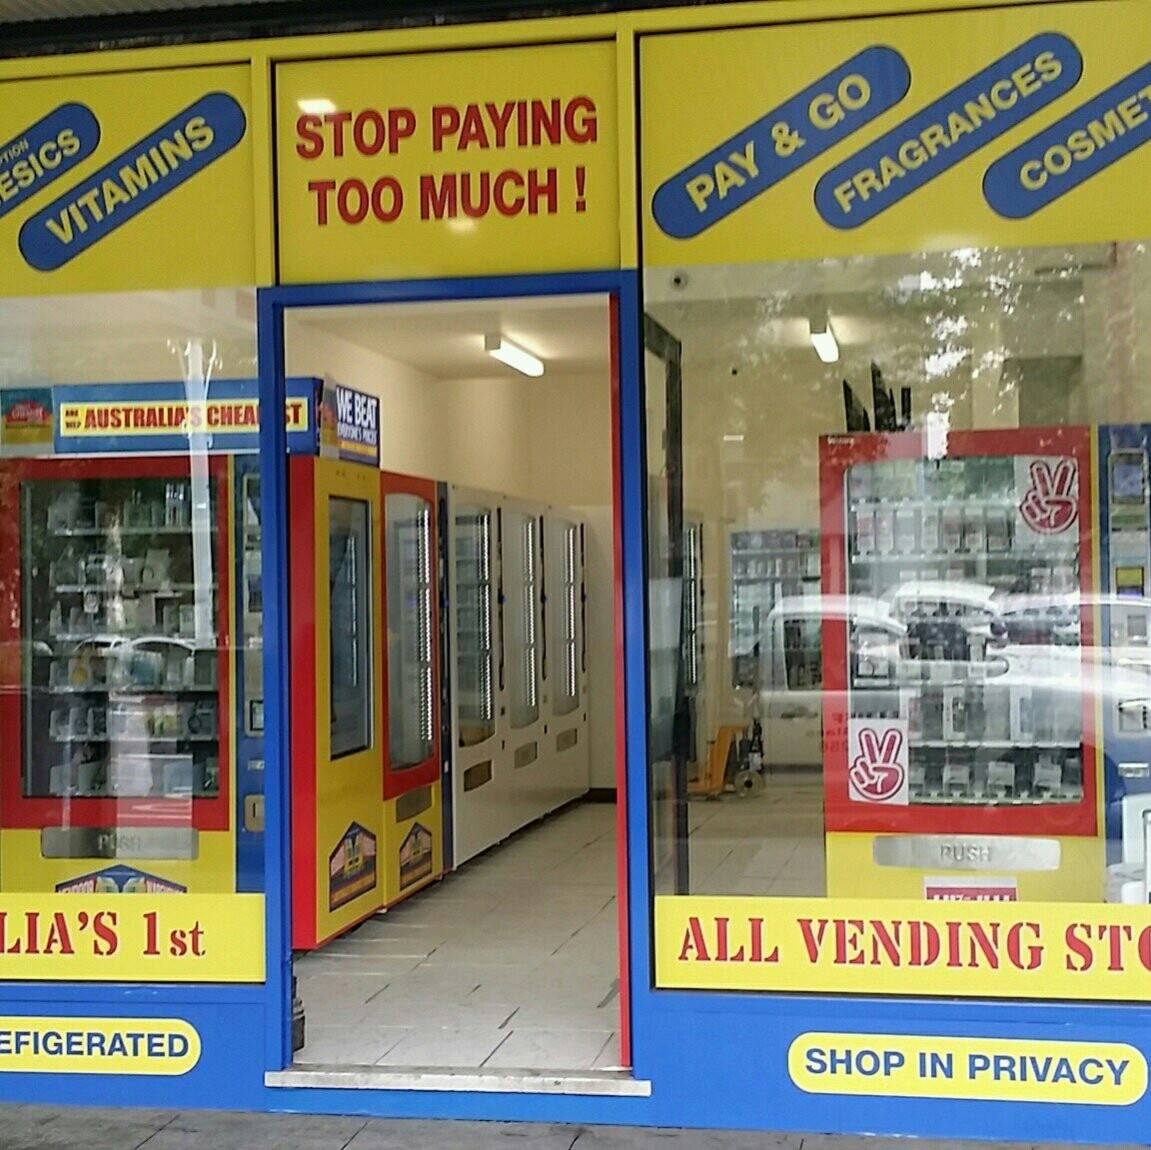 Poll: What do you think about vending machines selling cheap